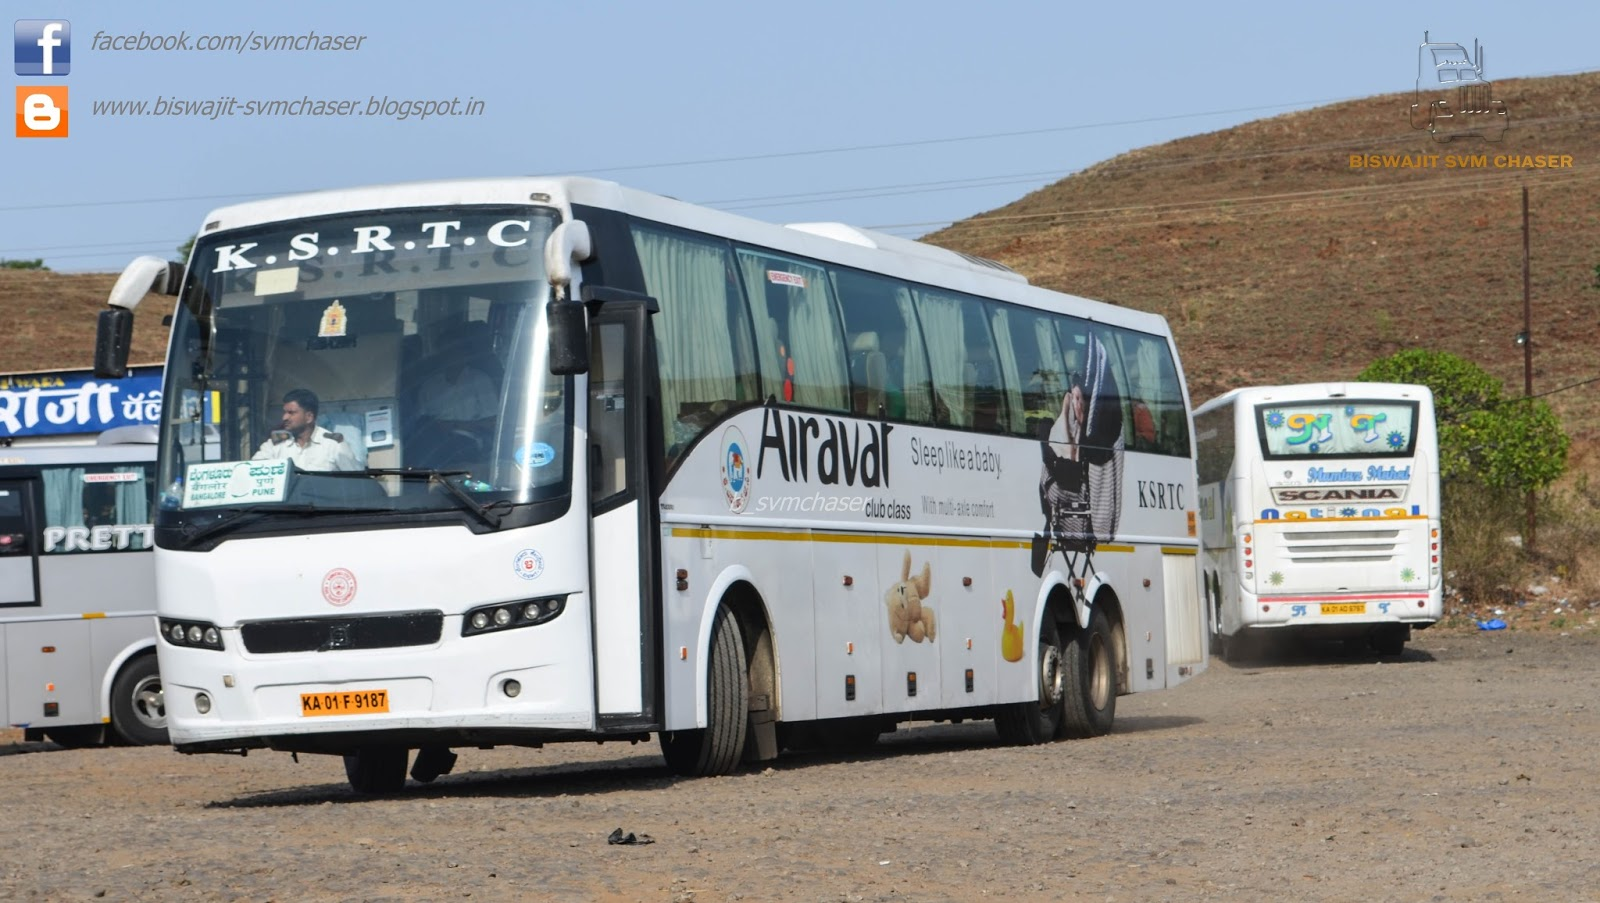 scania buses india reviews and experiences page 47